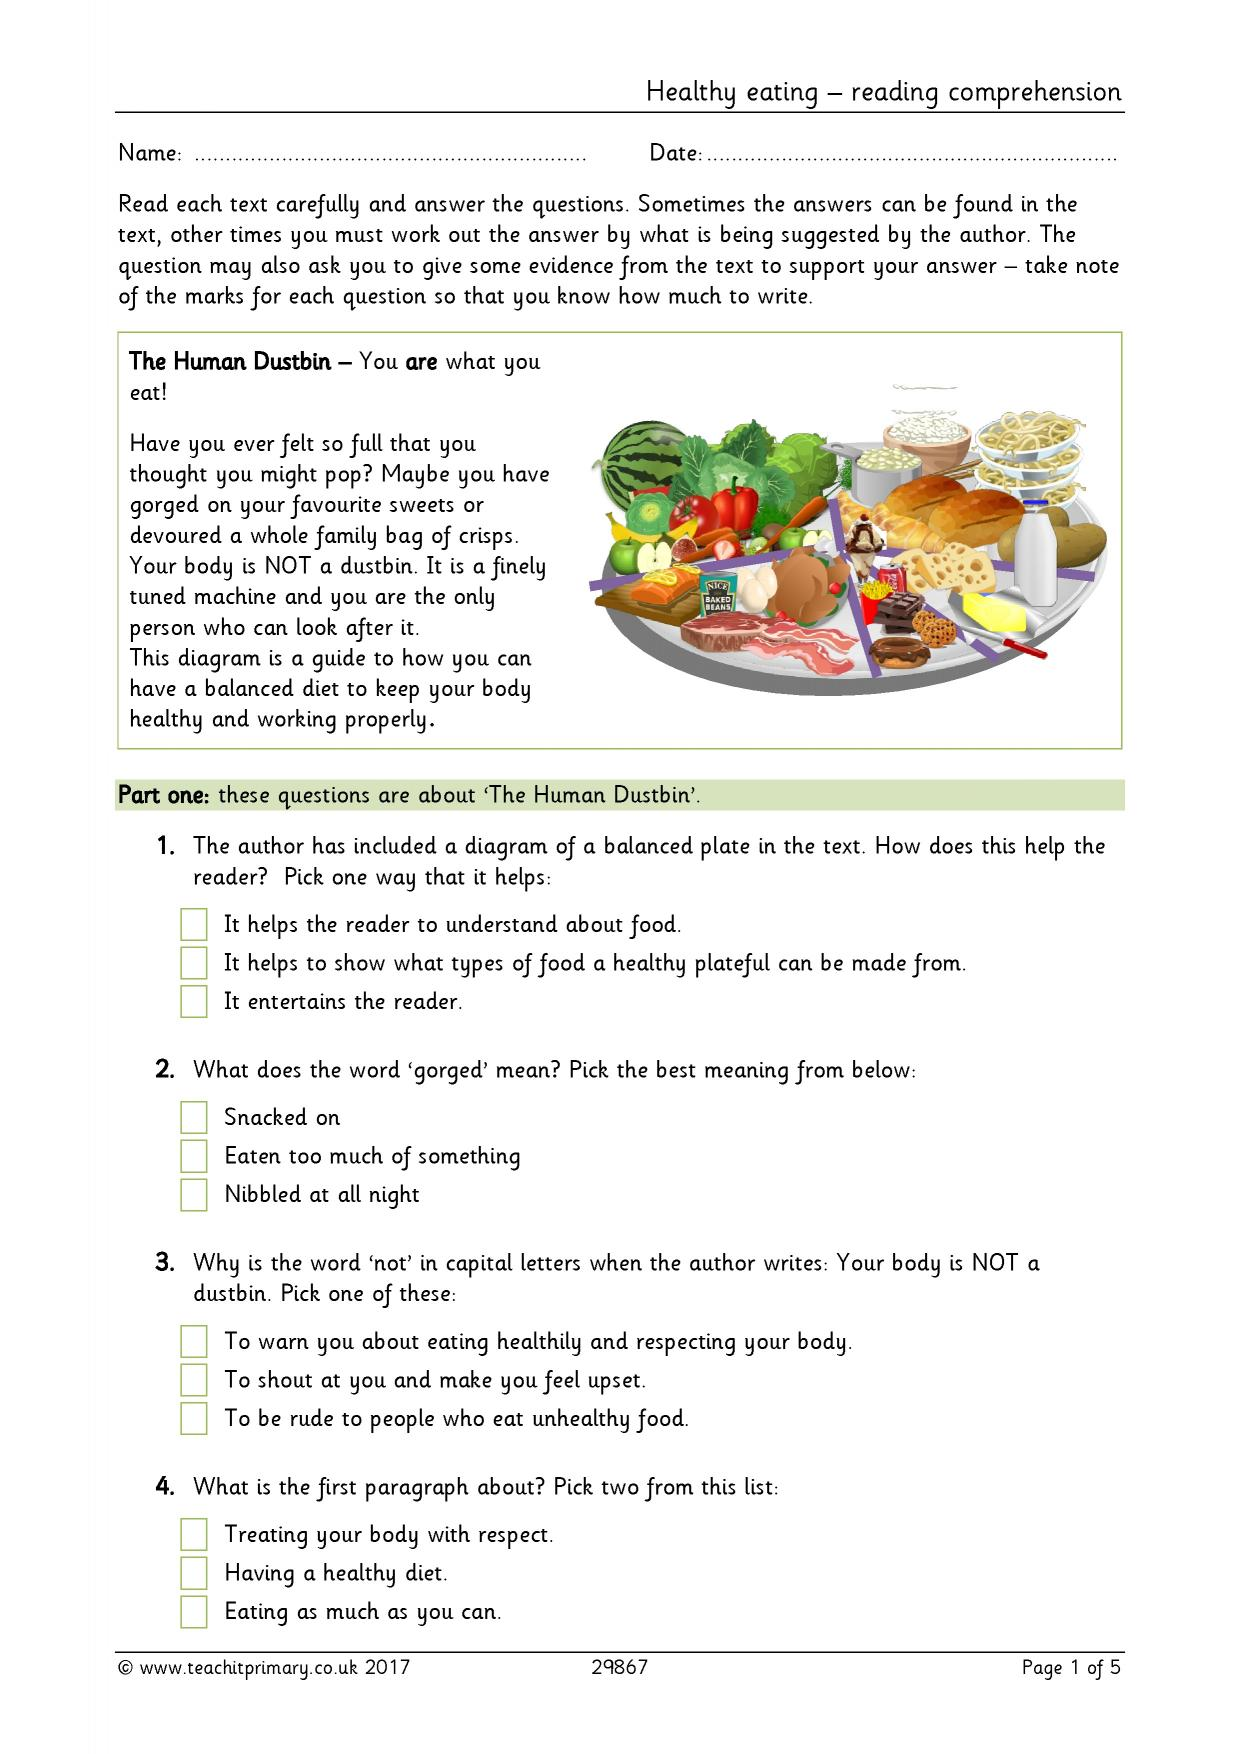 Healthy Eating Reading Prehension Food